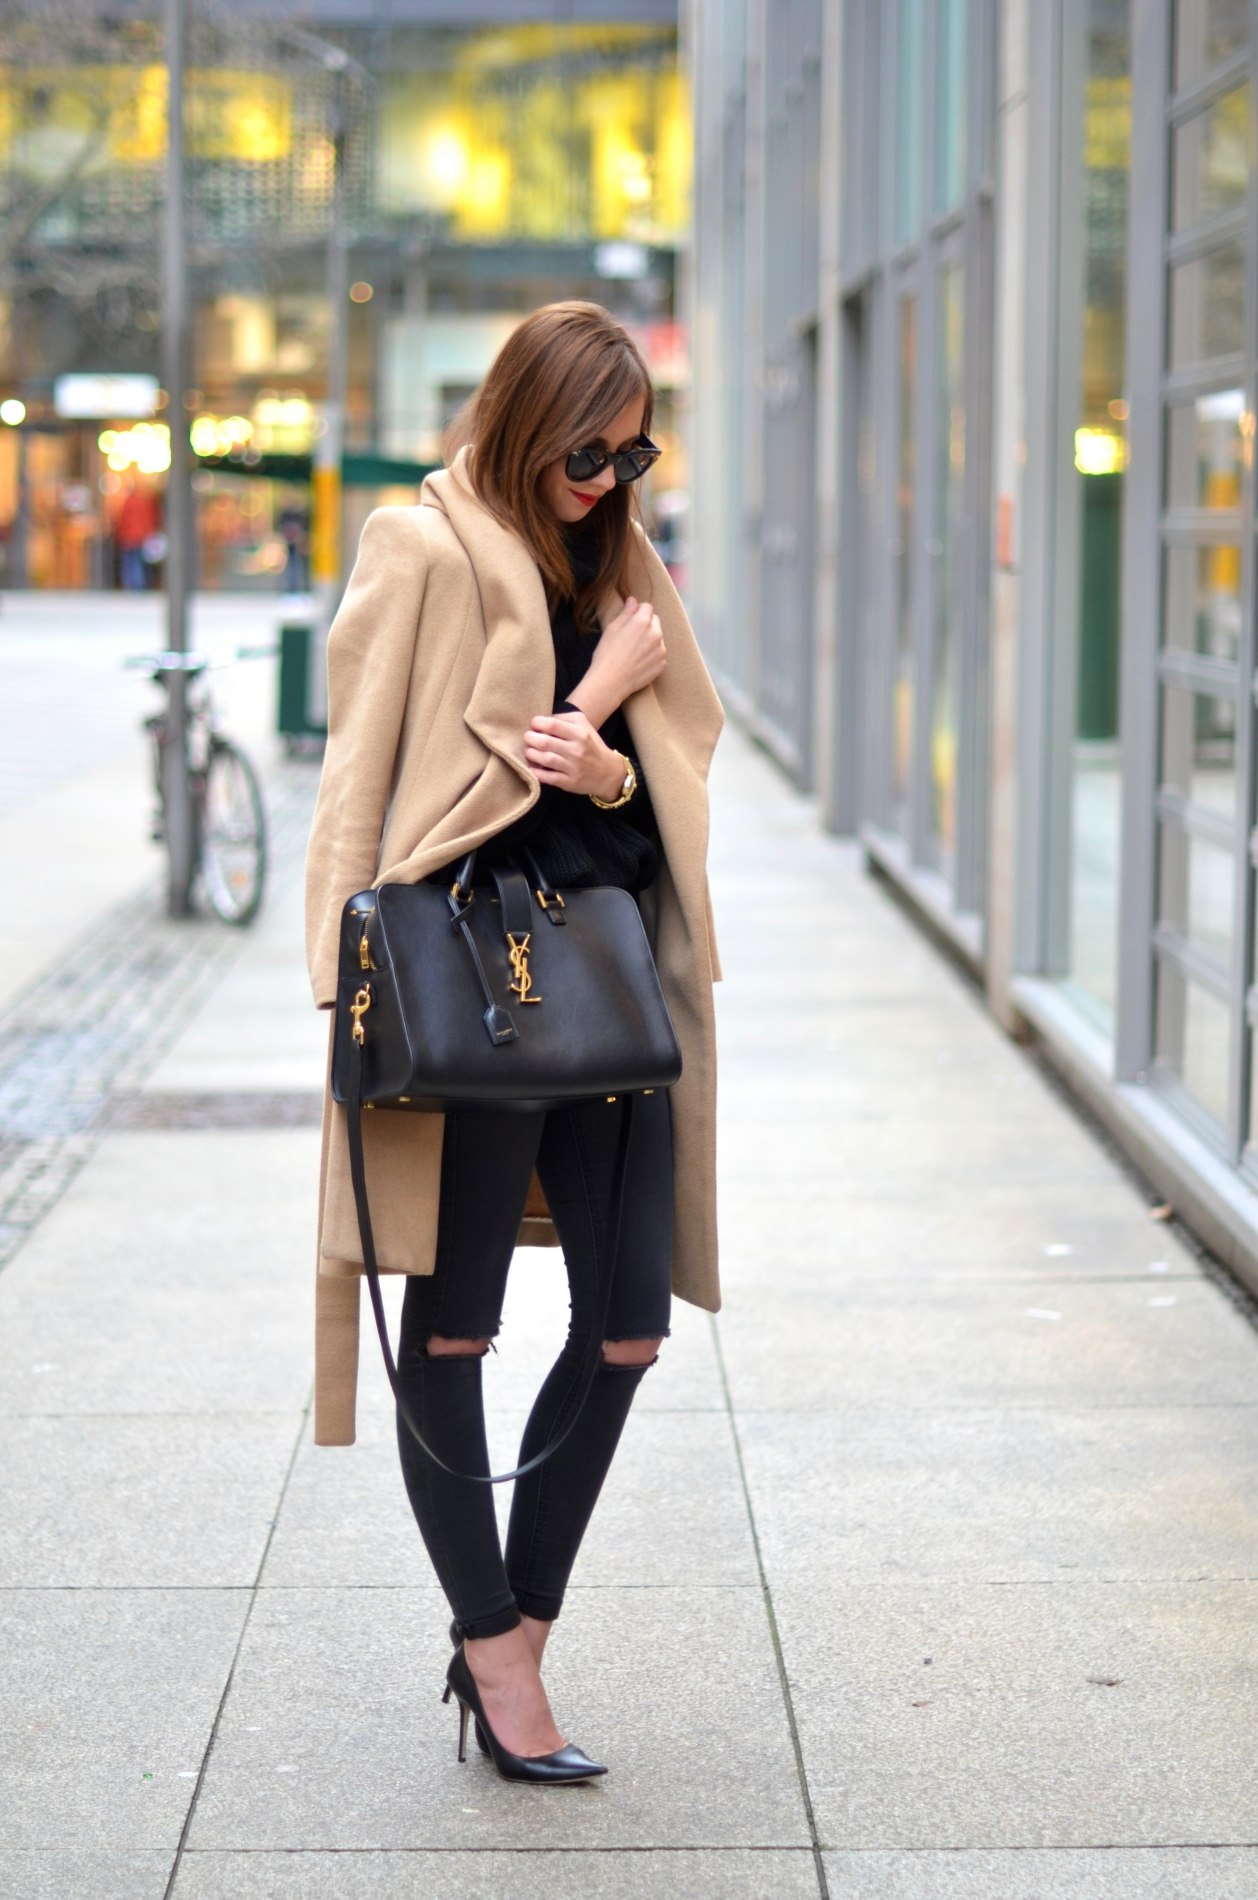 Camel coats look great worn over an all black outfit like this one, made up of a black turtle neck top and distressed black denim. Via Barbora Ondrackova. Coat: Mango, Turtle Neck: American Apparel, Jeans: Topshop, Heels: Jimmy Choo.